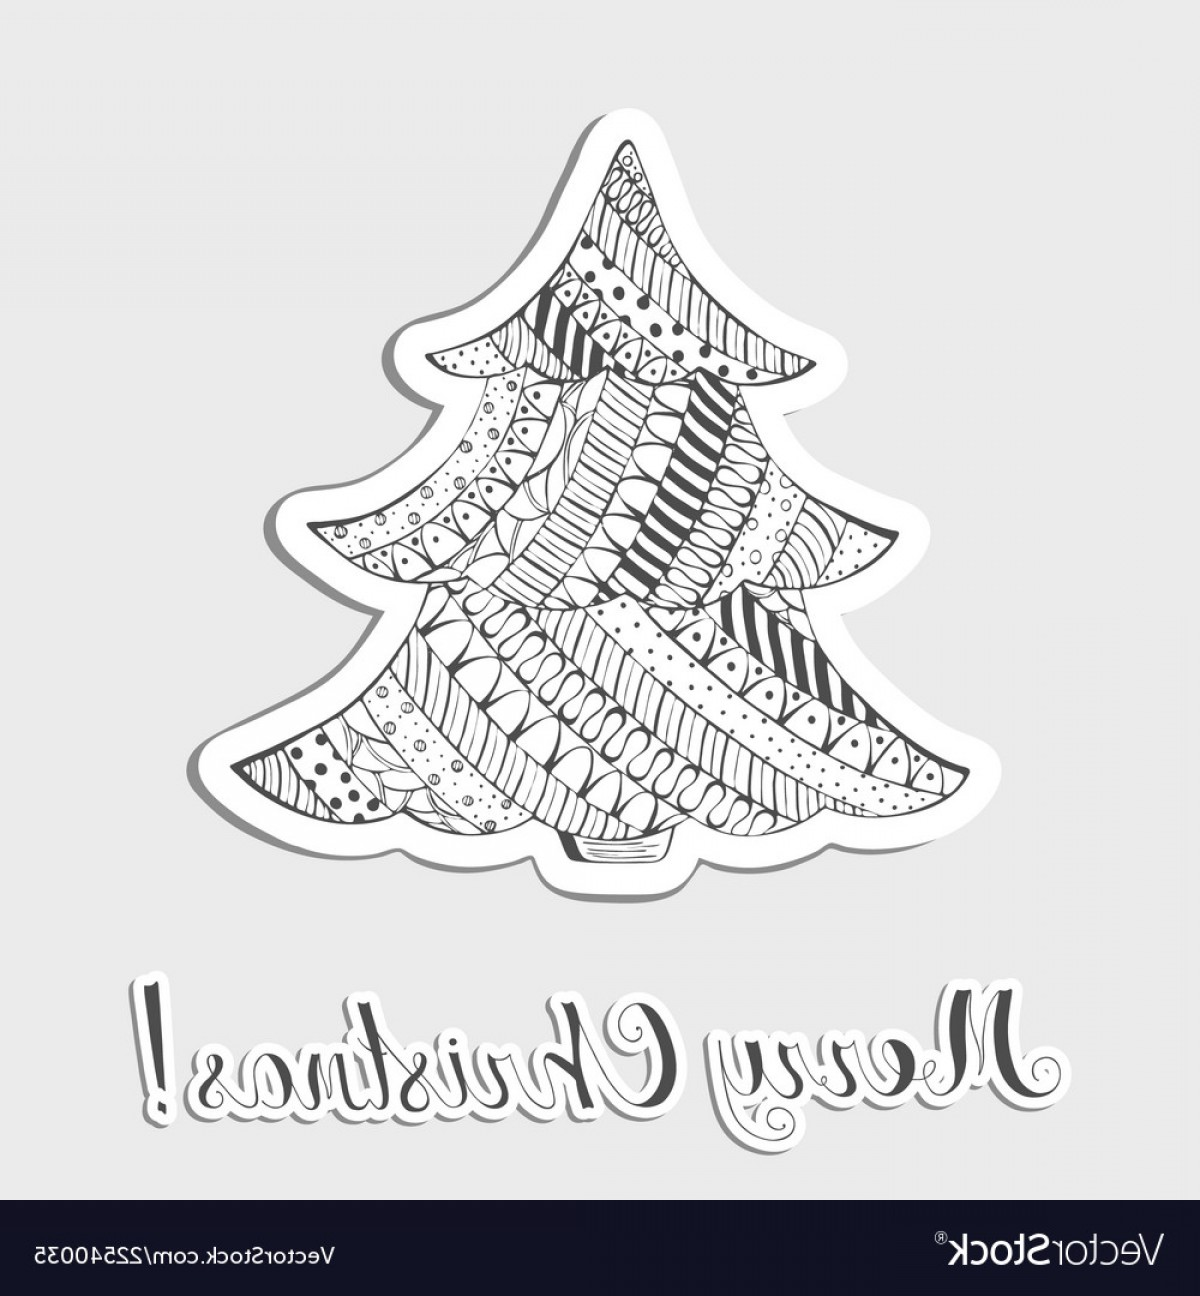 Vector-Based Grayscale Christmas: Patterned Grayscale Christmas Tree Made As Sticker Vector